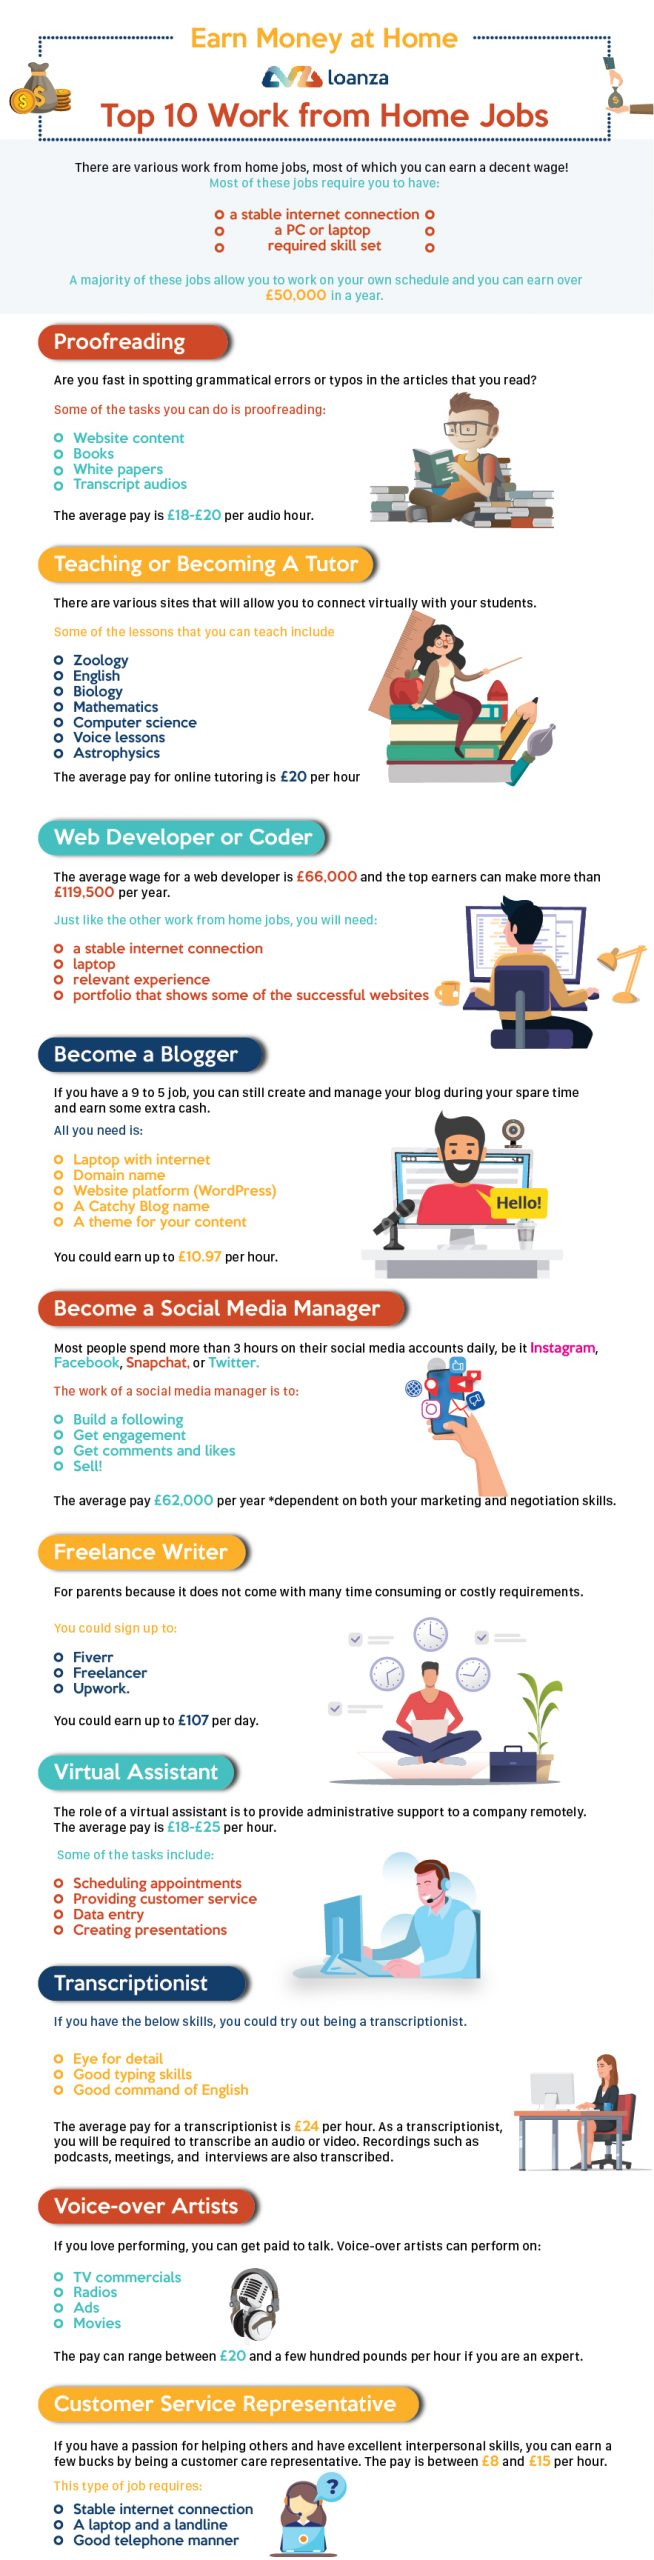 Top 10 Work From Home Jobs Infographic